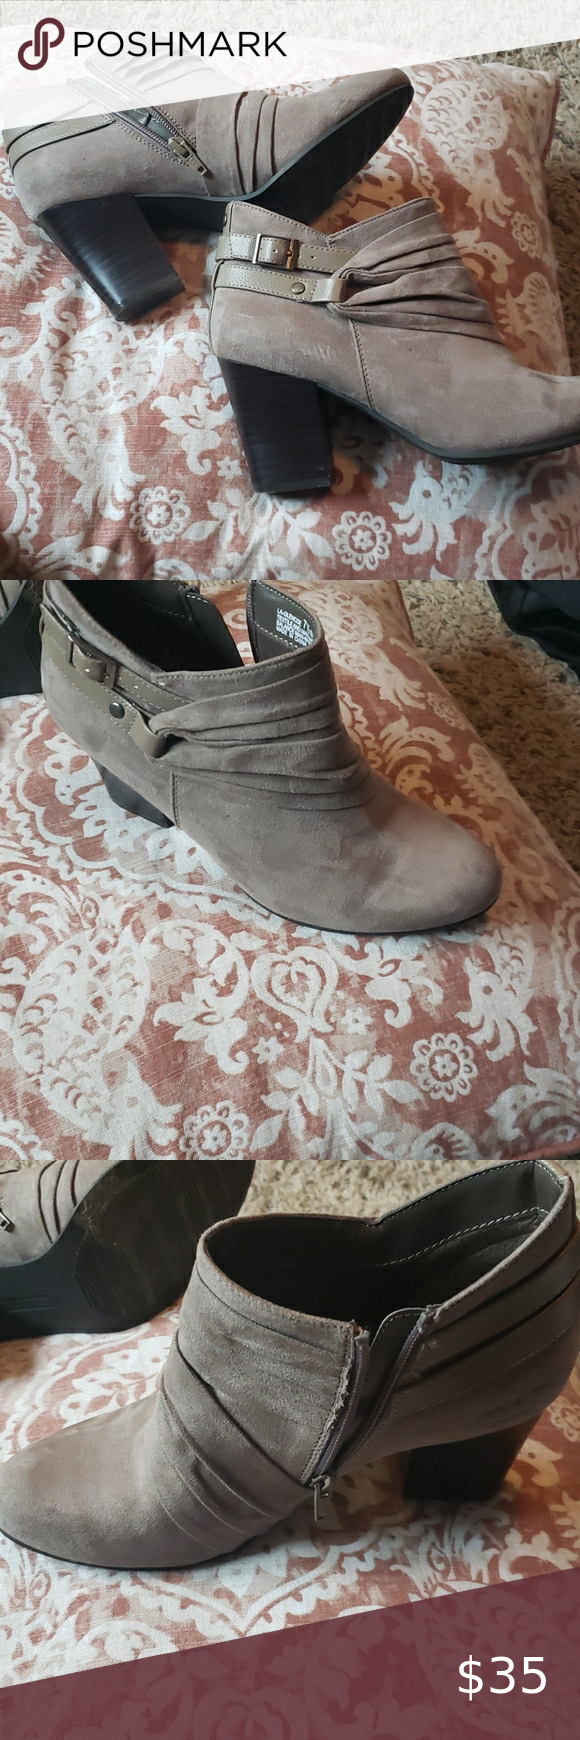 Boots, Laura ashley shoes, Bootie boots